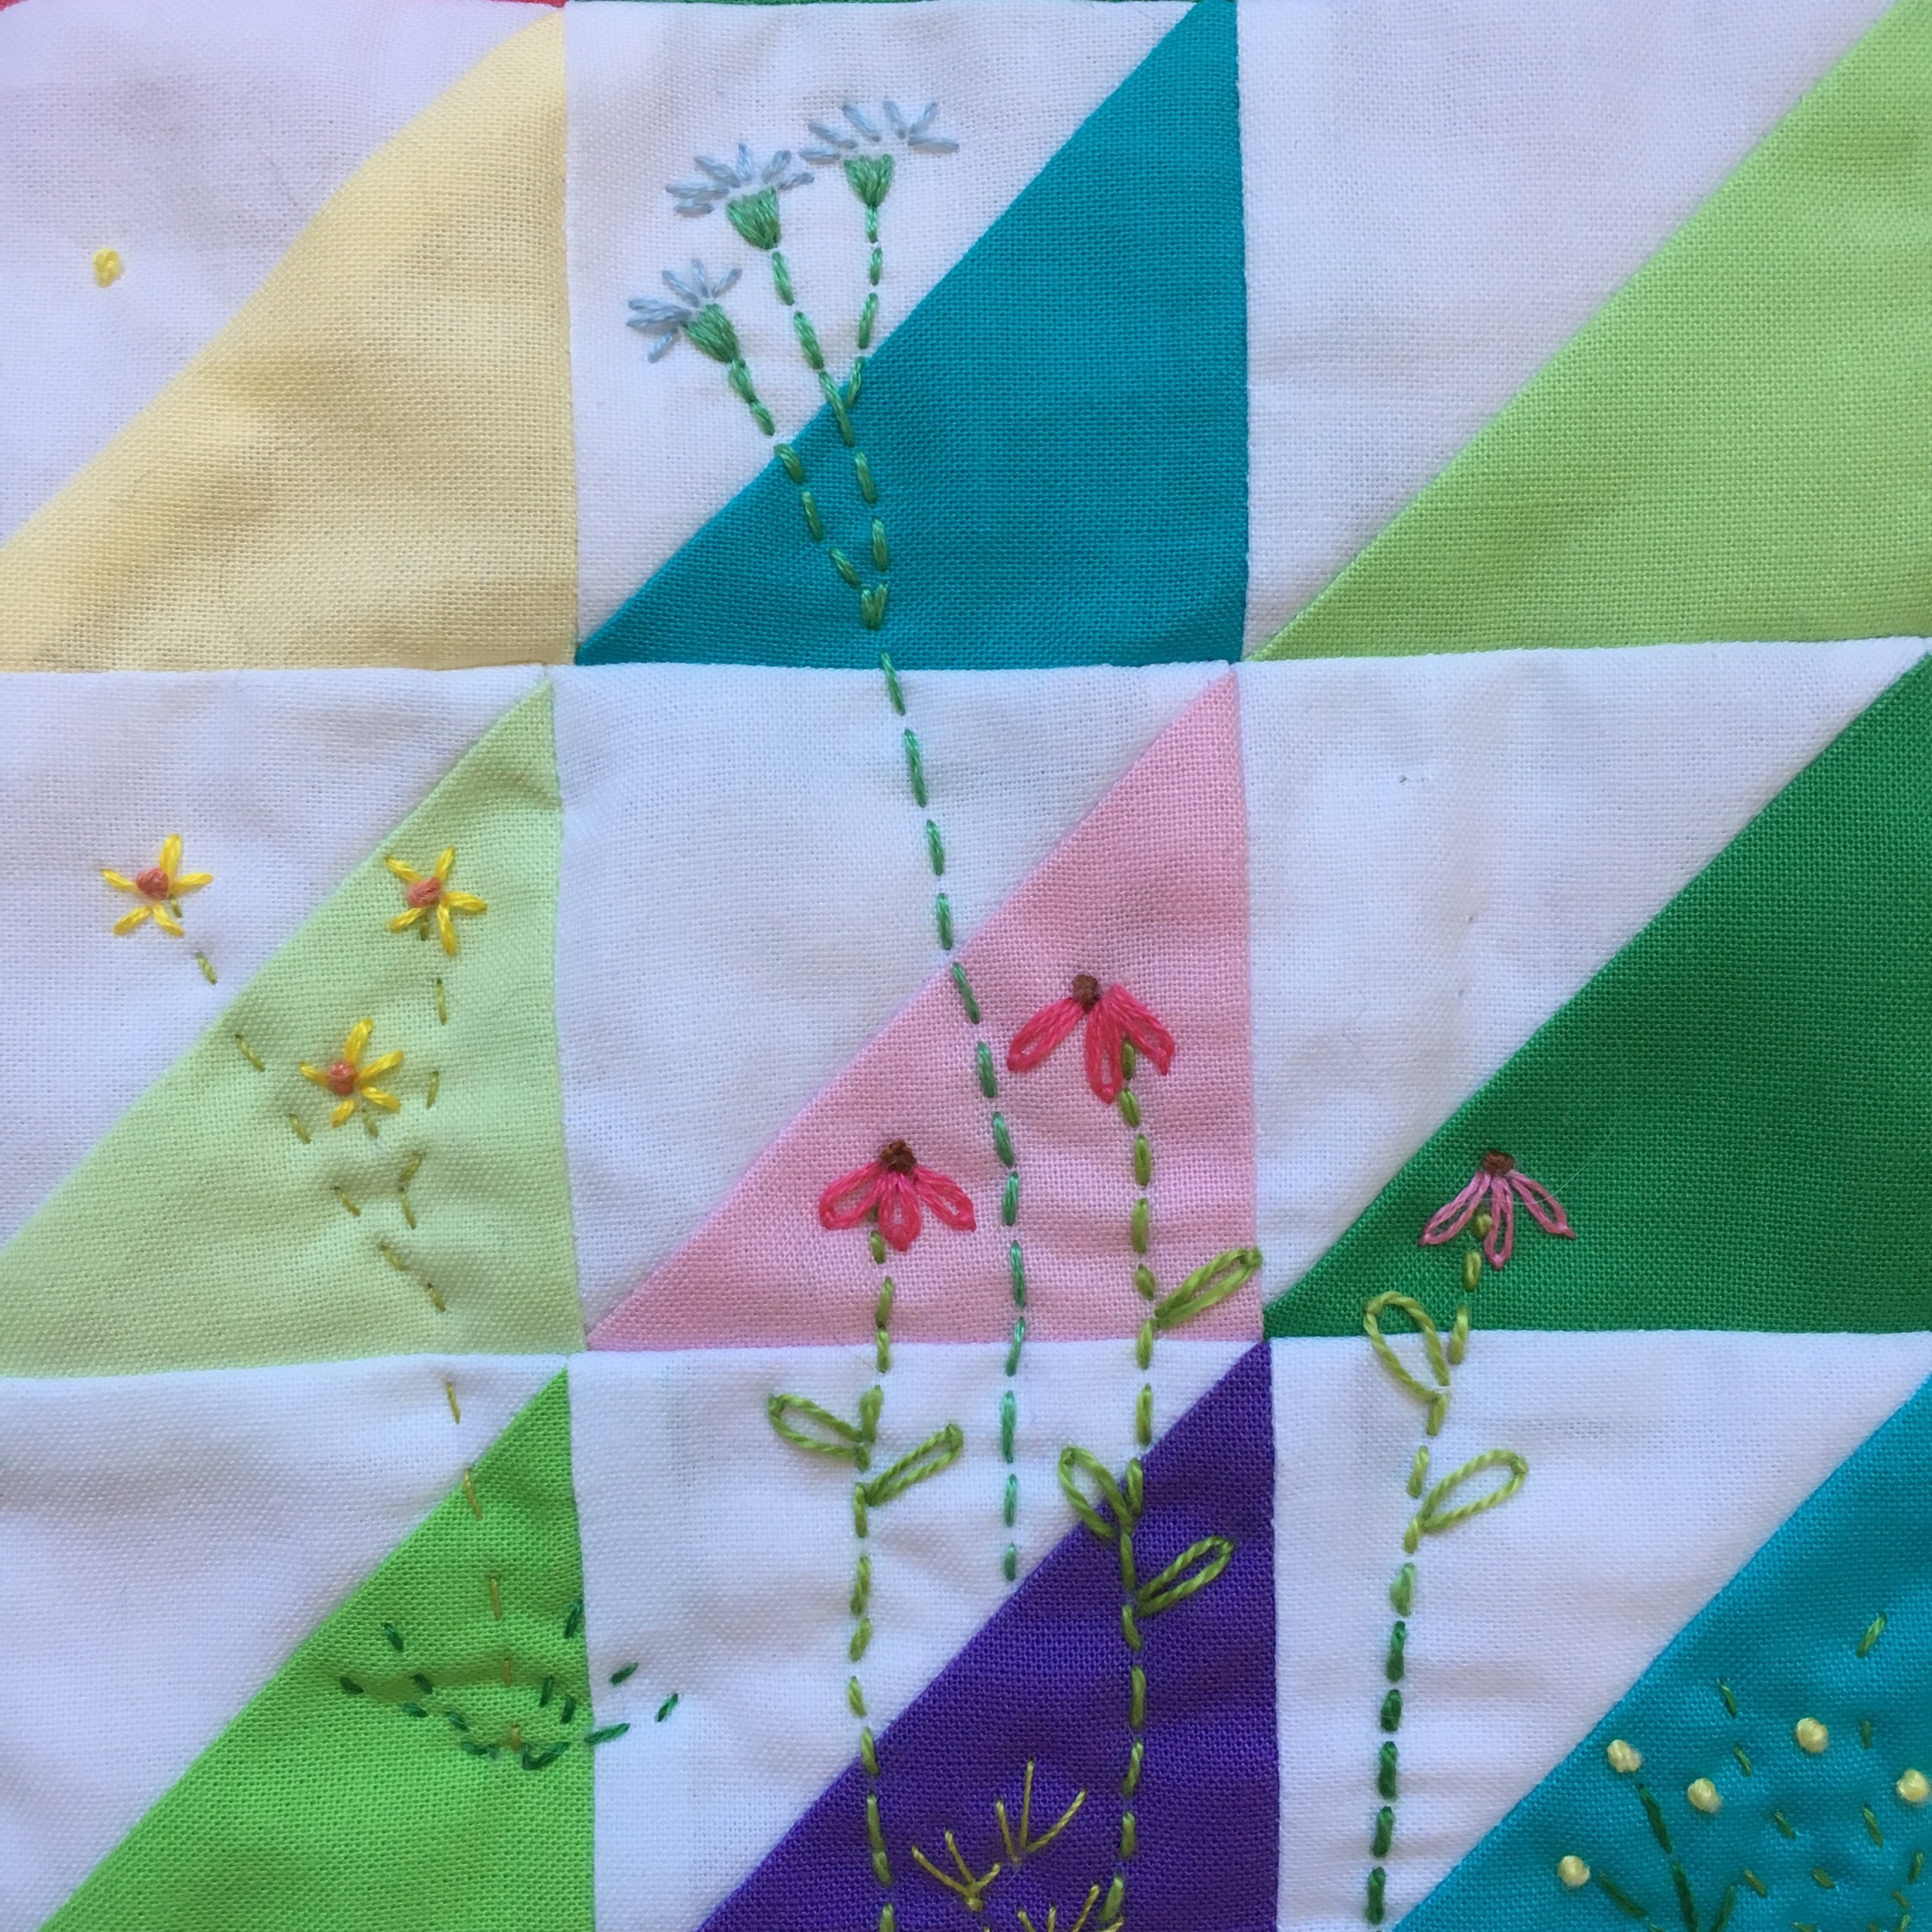 Detail of embroidered flowers on HST Mini Quilt